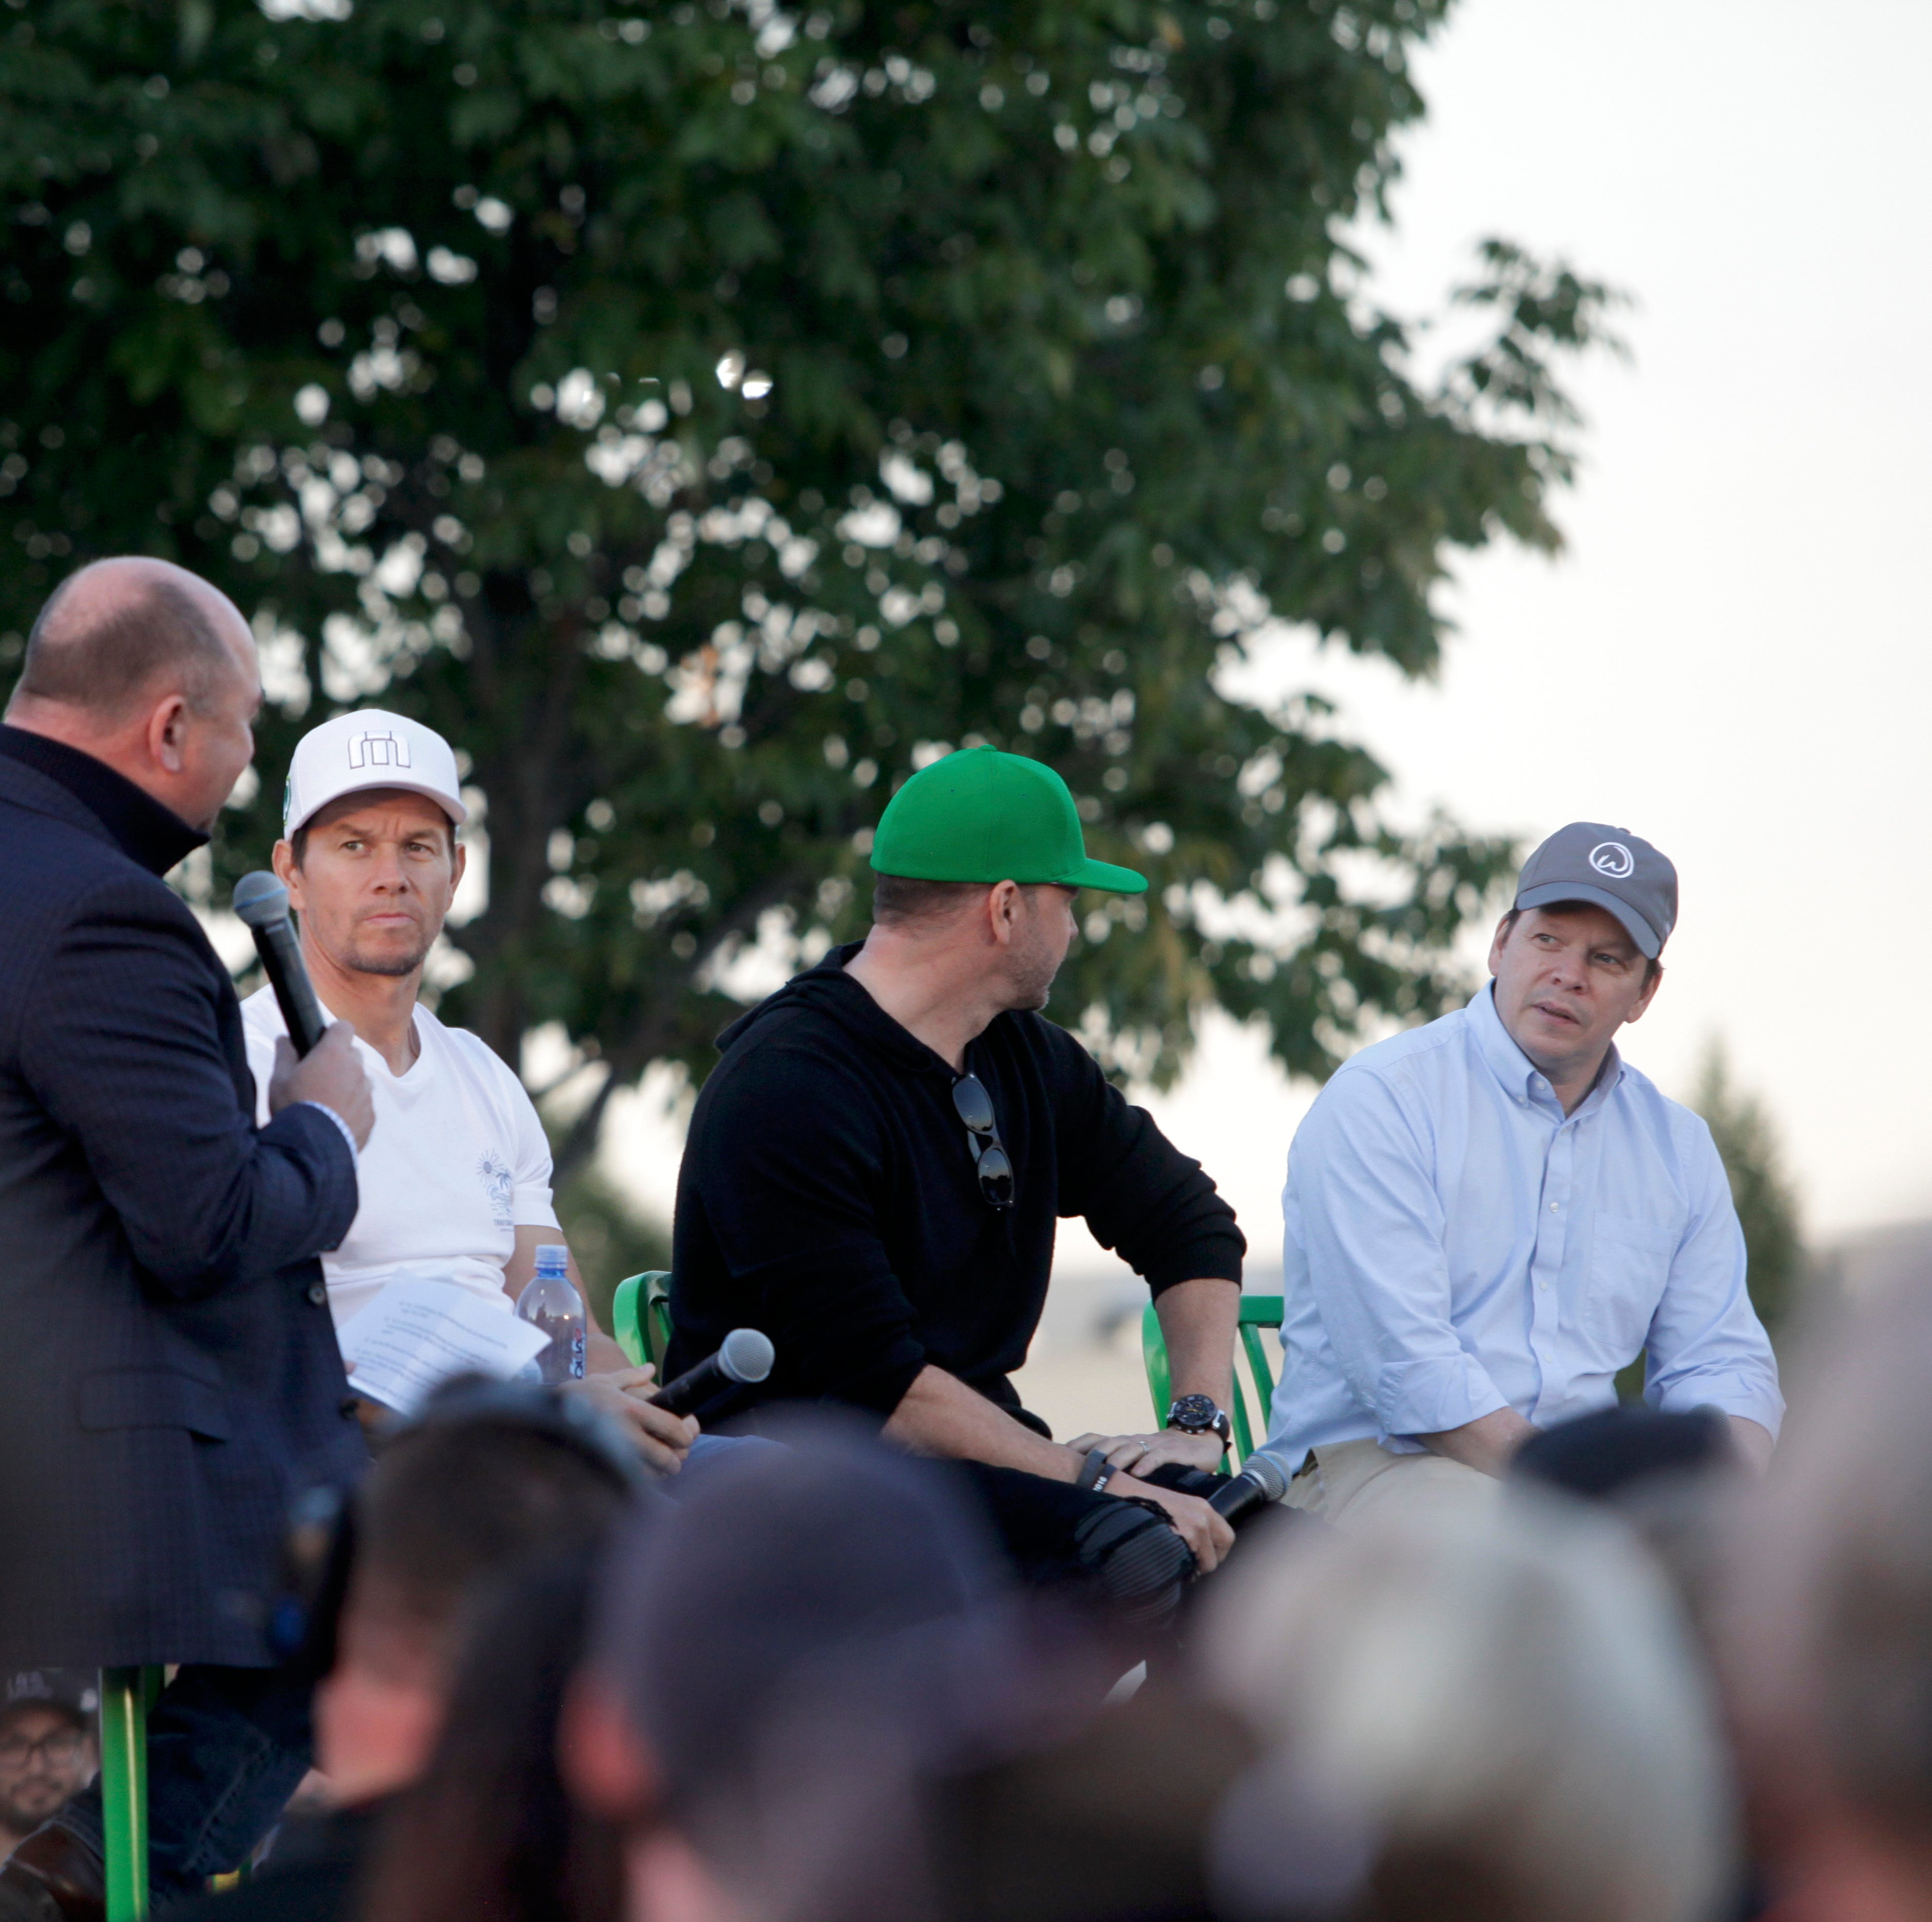 Mark, Donnie and Paul Wahlberg appeared in West Des Moines on Saturday night to promote a new location of their burger joint Wahlburgers.